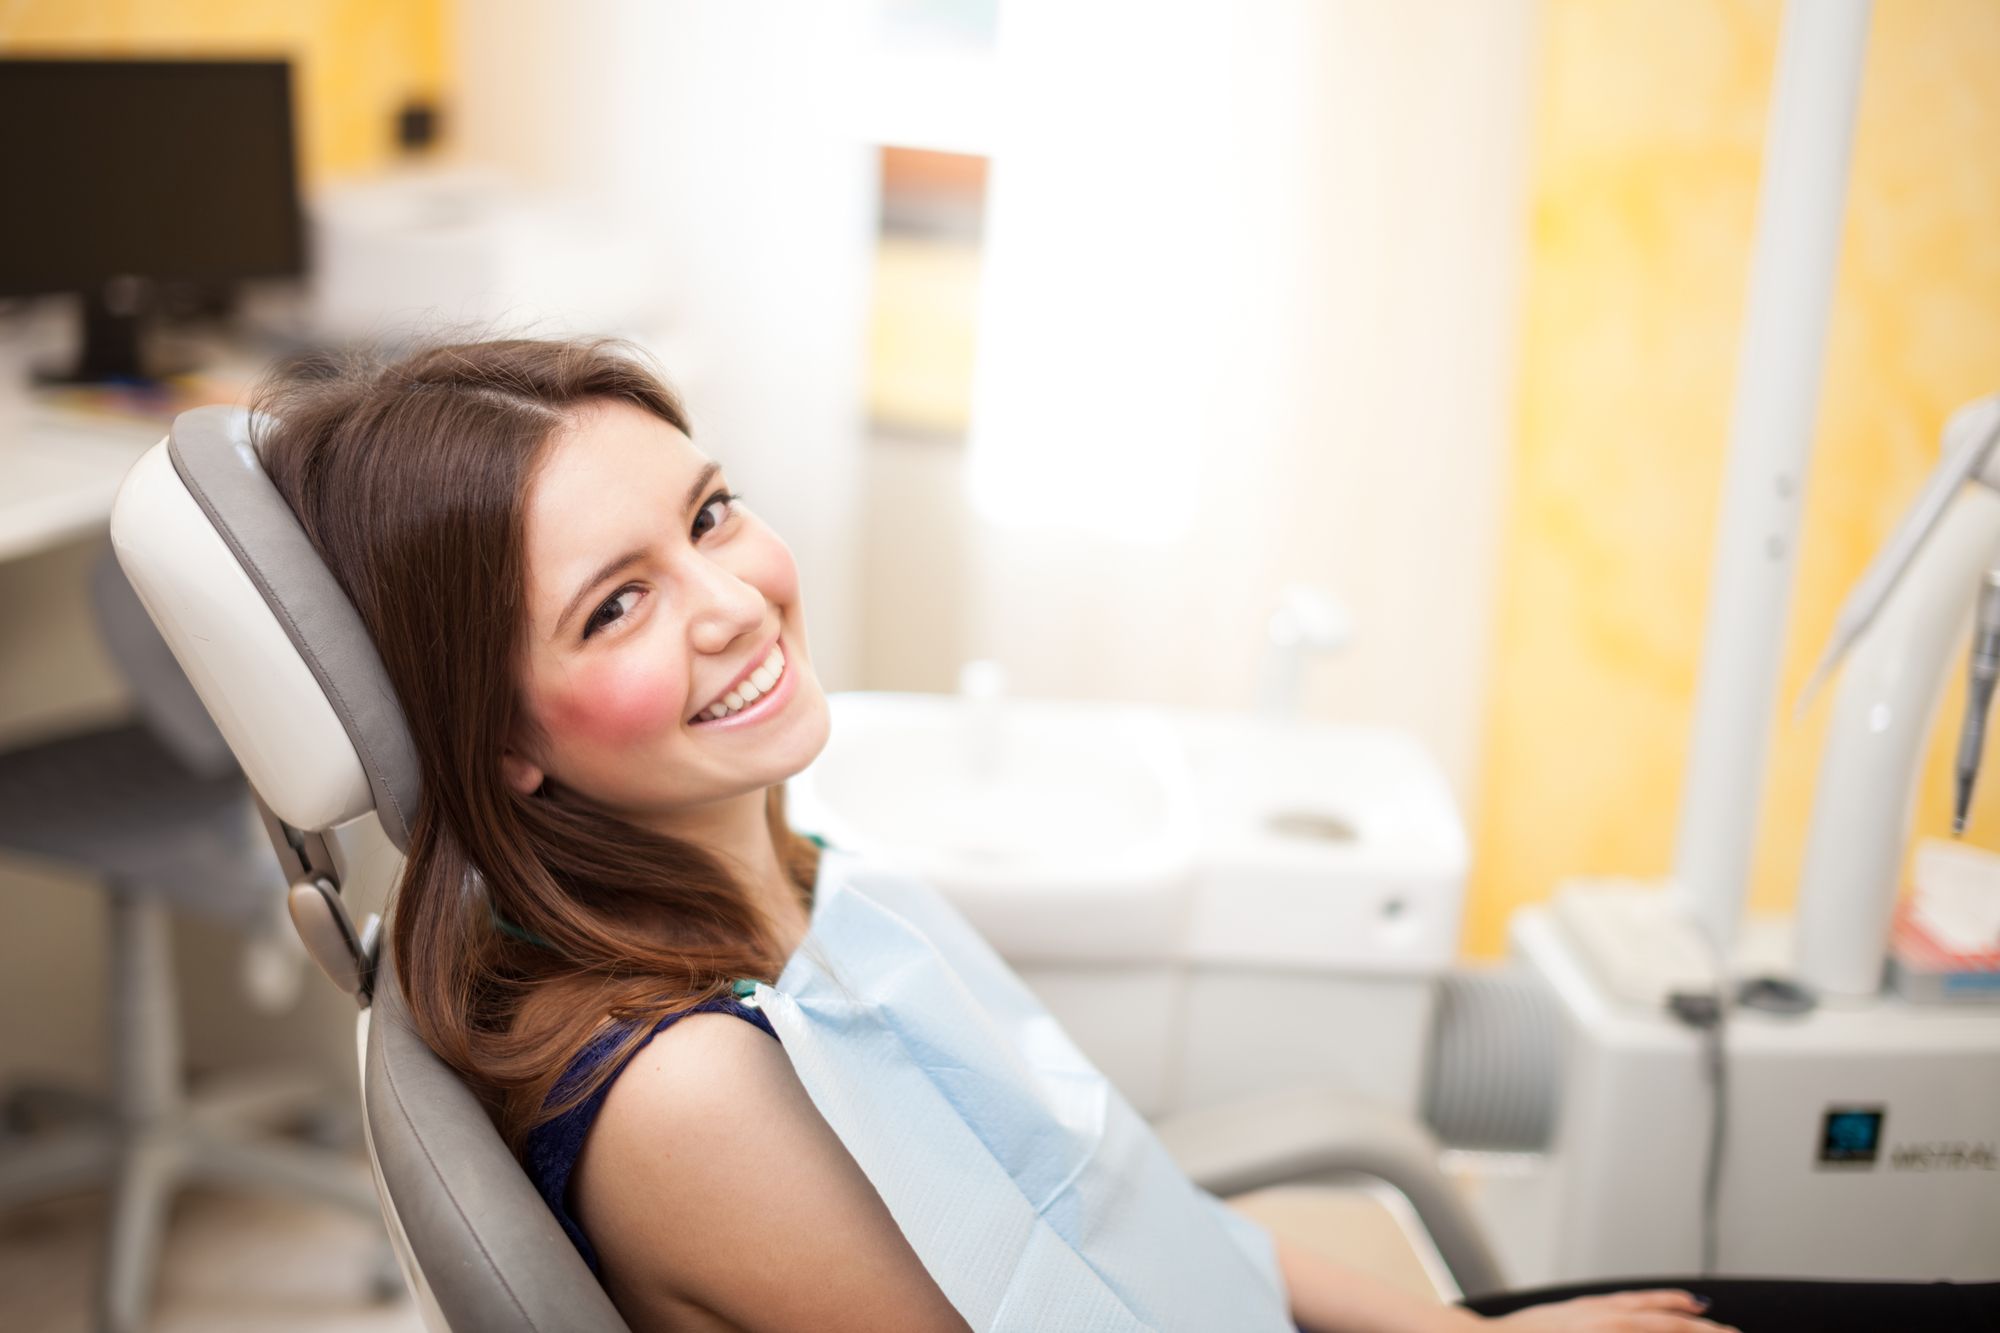 where is the best saturday dentist west palm beach?